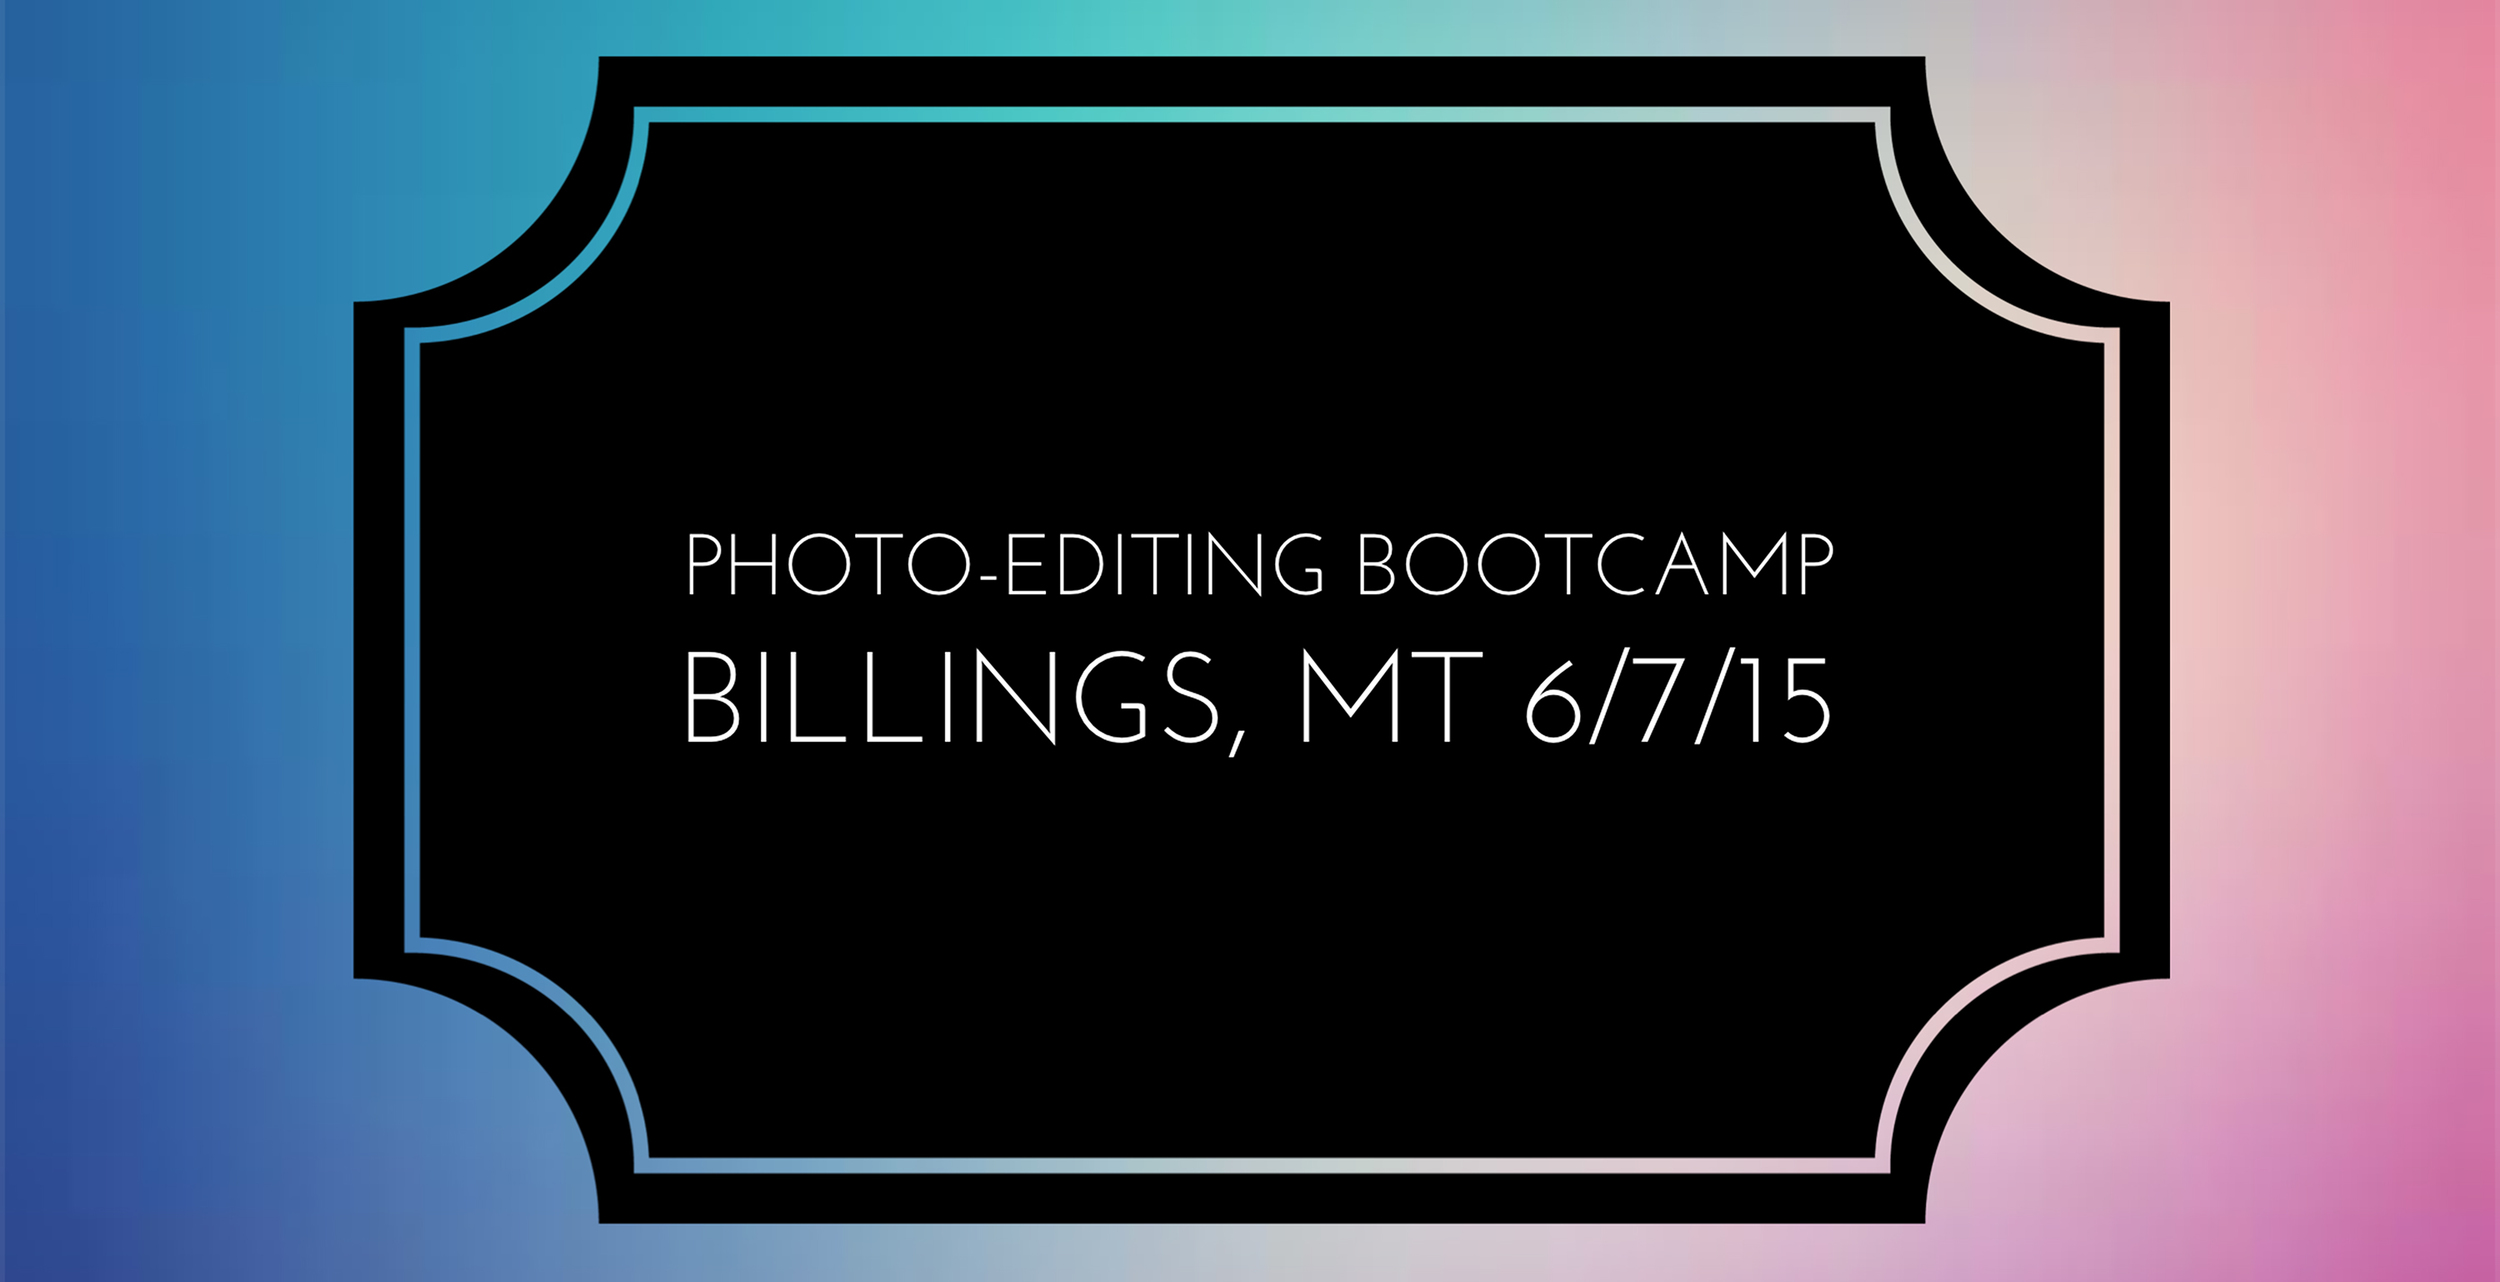 Photo-Editing Bootcamp copy.jpg